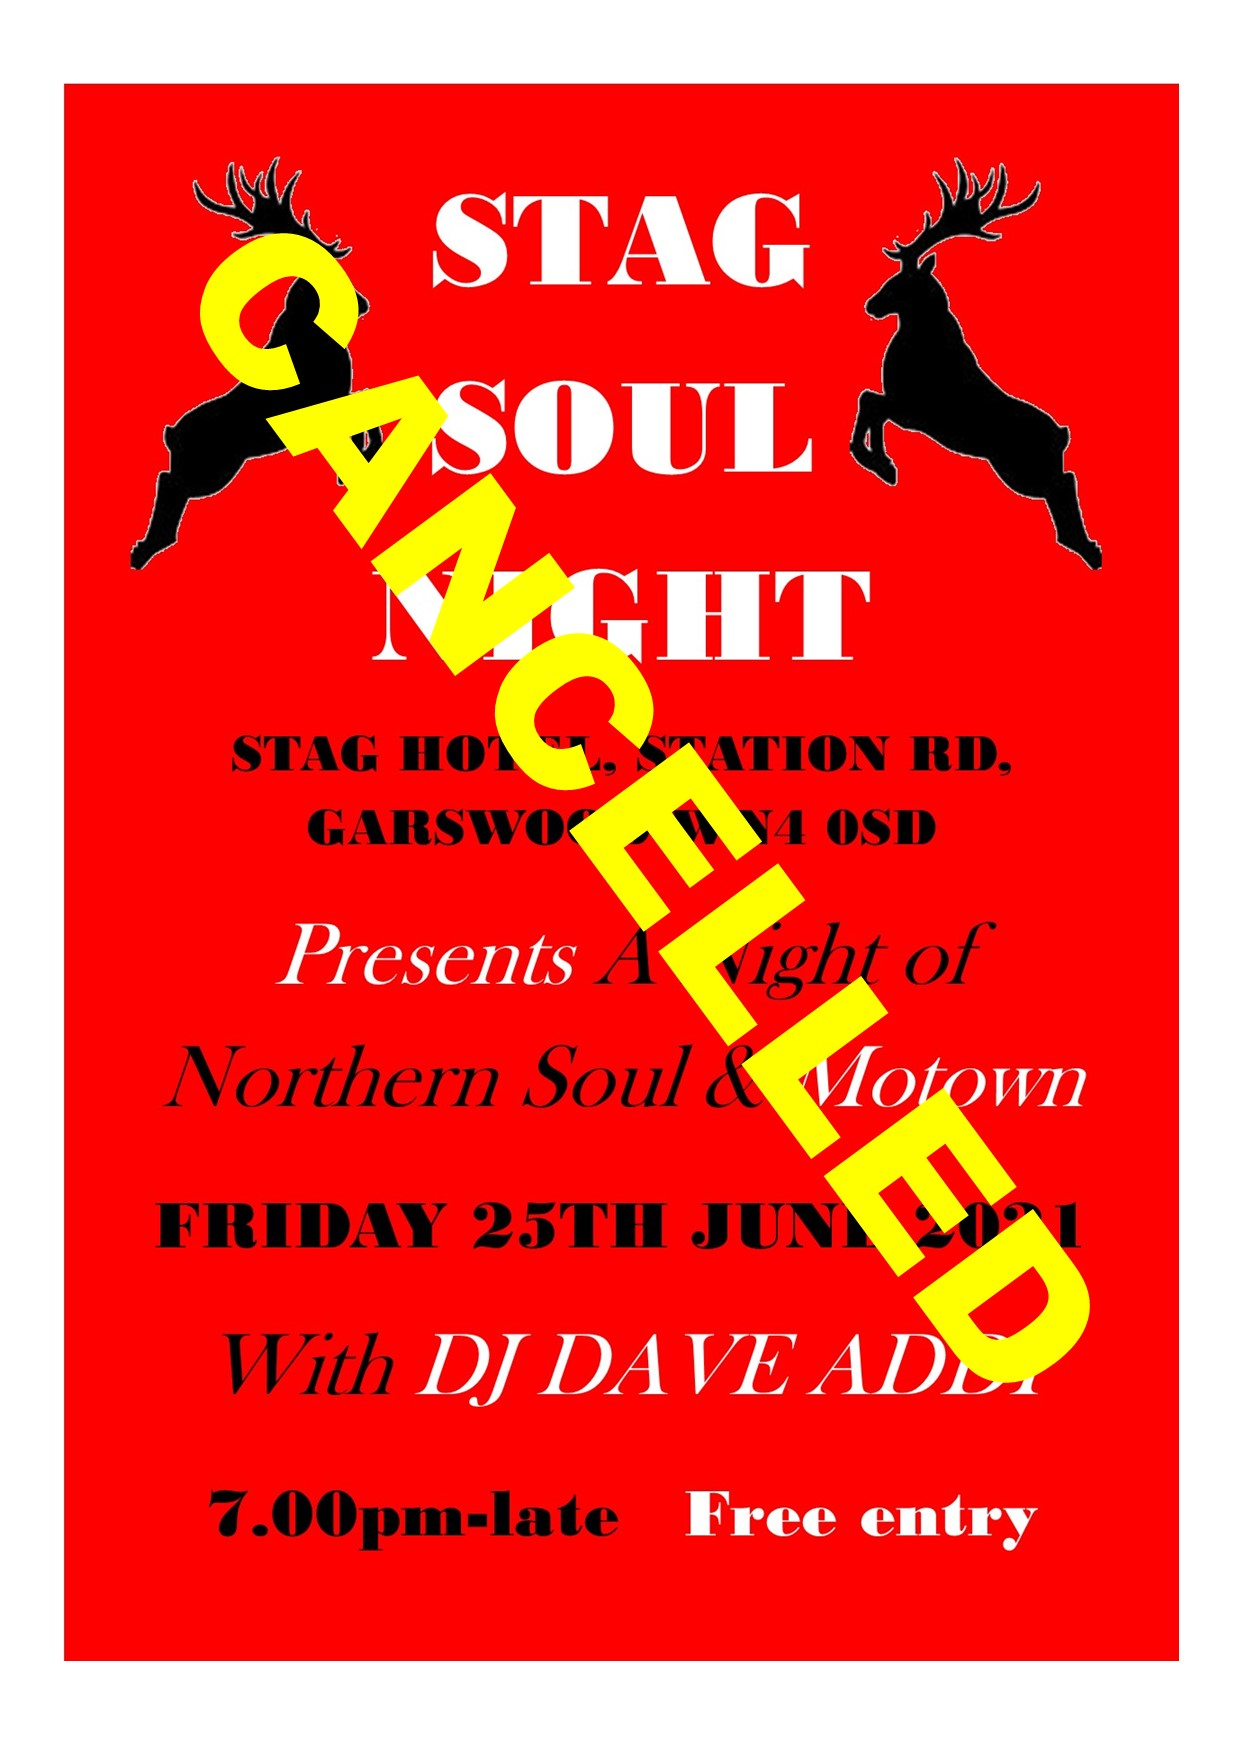 Stag Hotel Soul Night Cancelled flyer